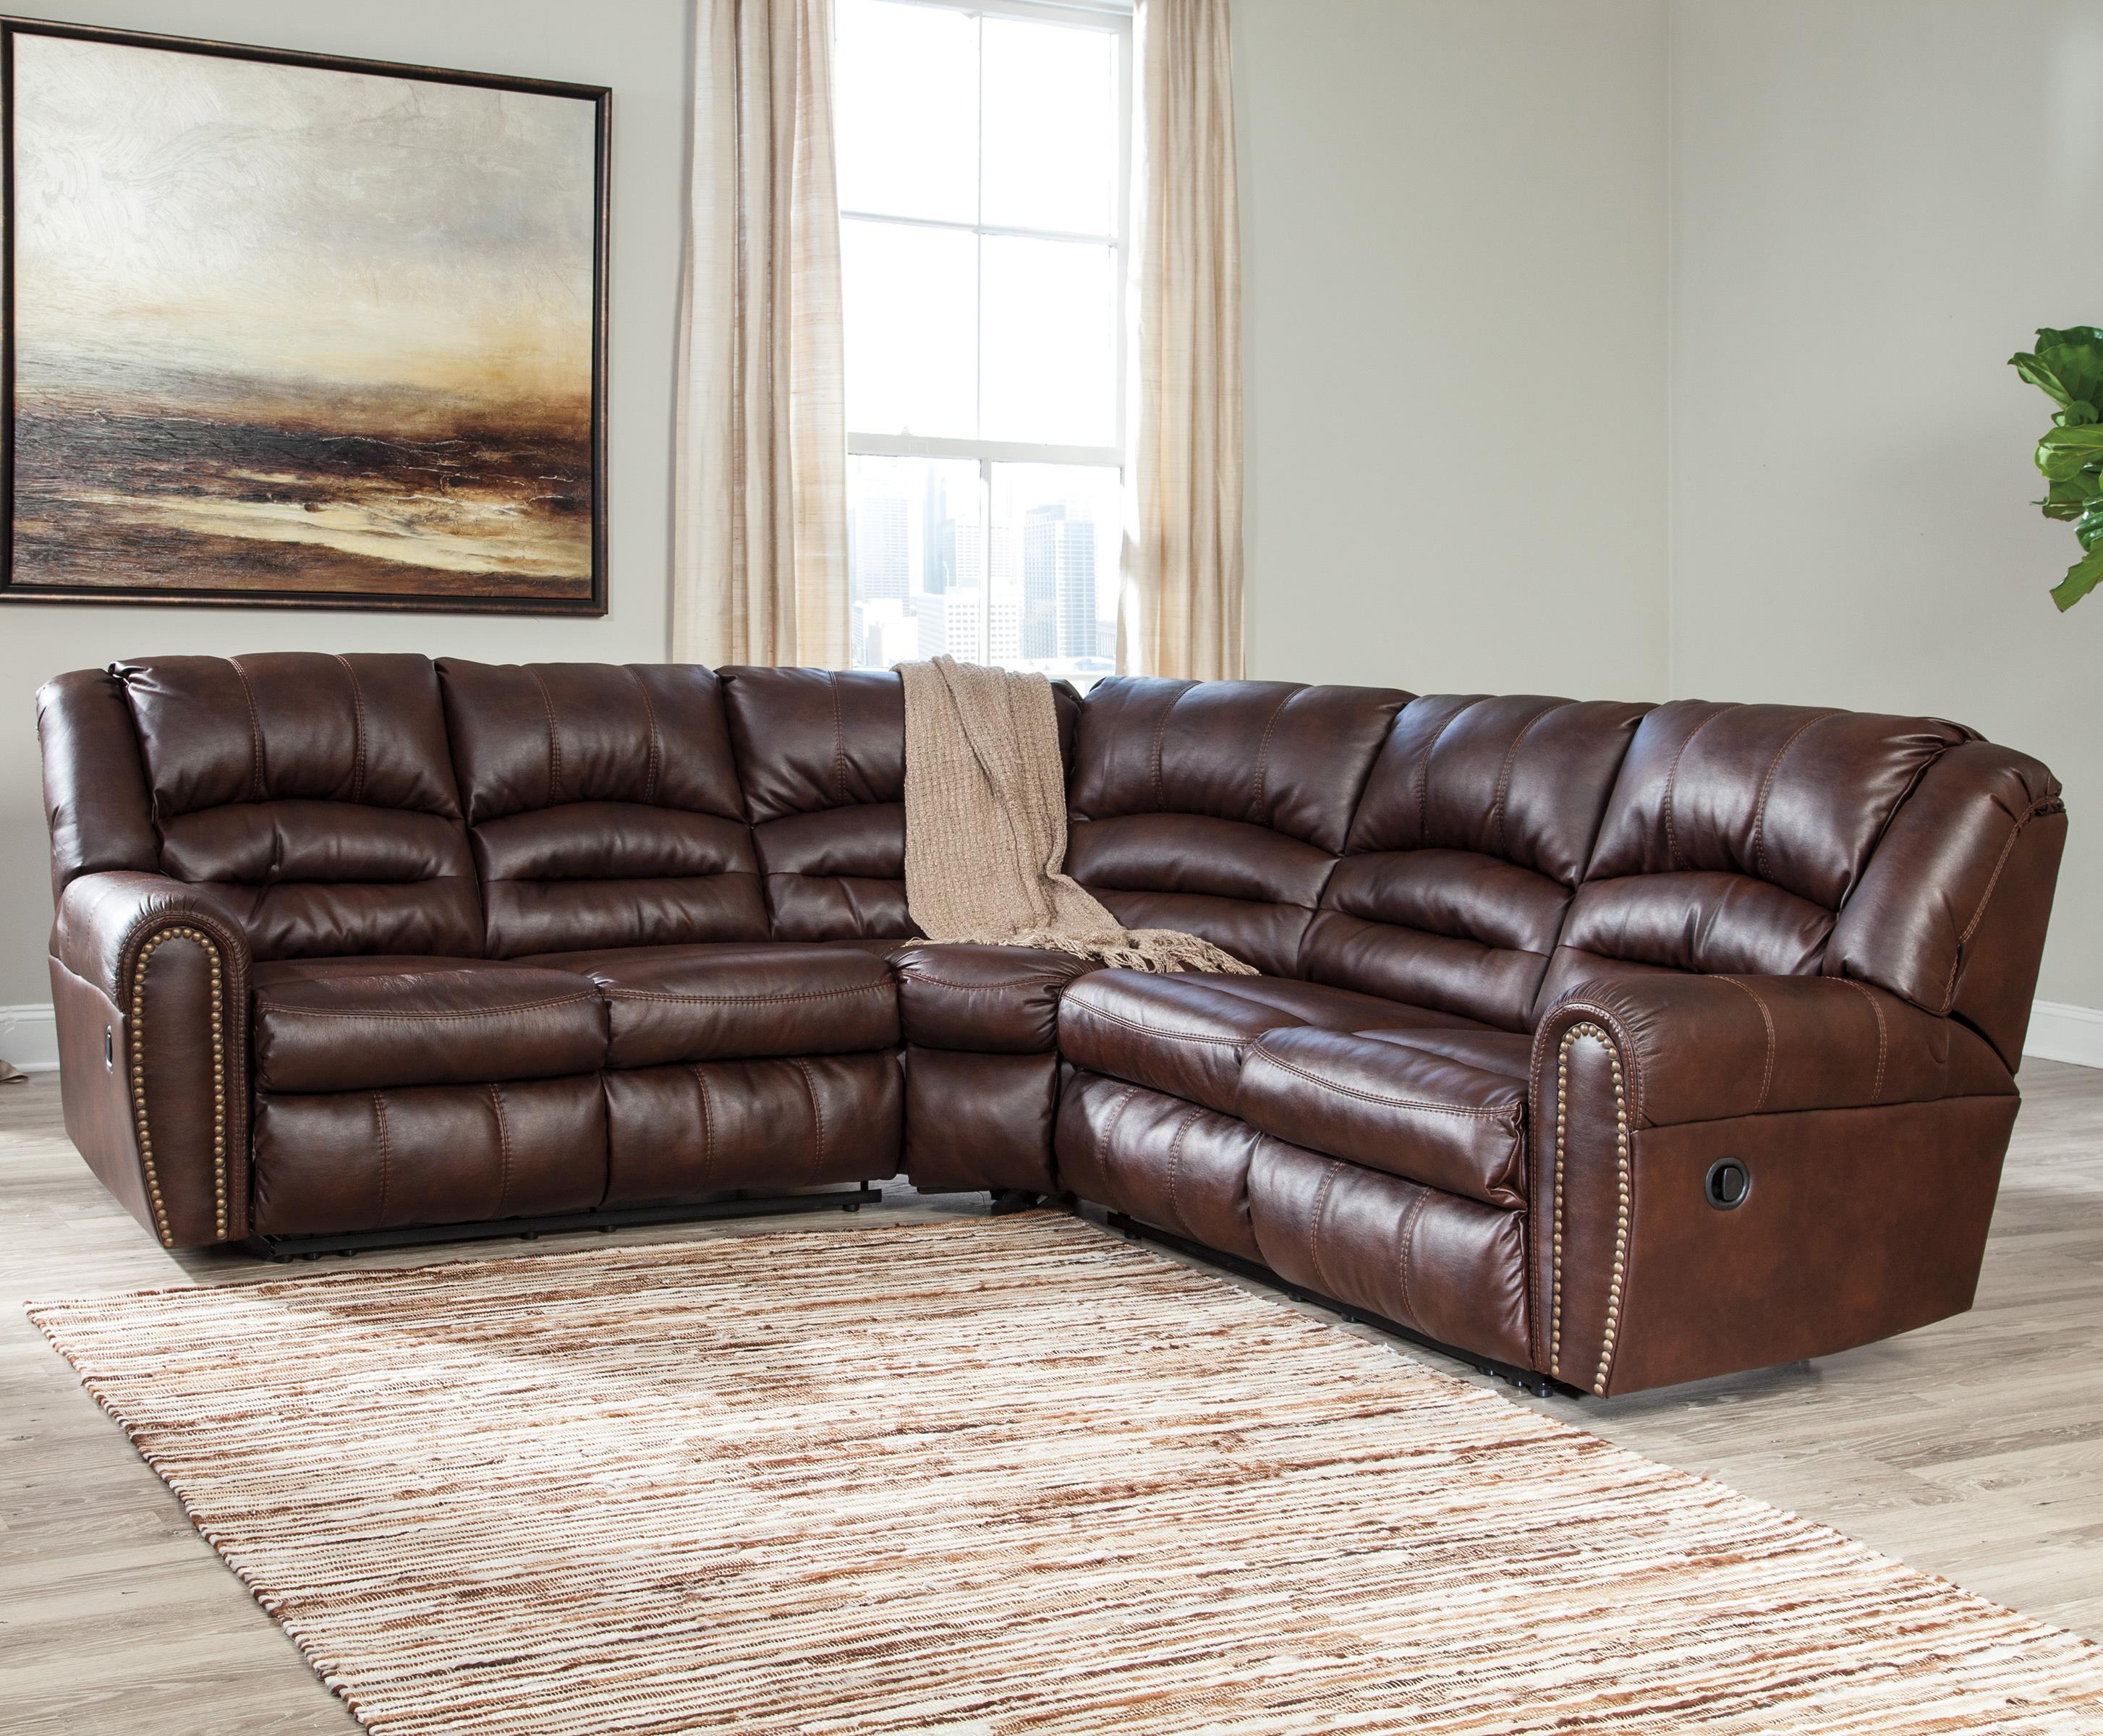 Signature design by ashley manzanola reclining sectional for Sectional sofas with nailhead trim